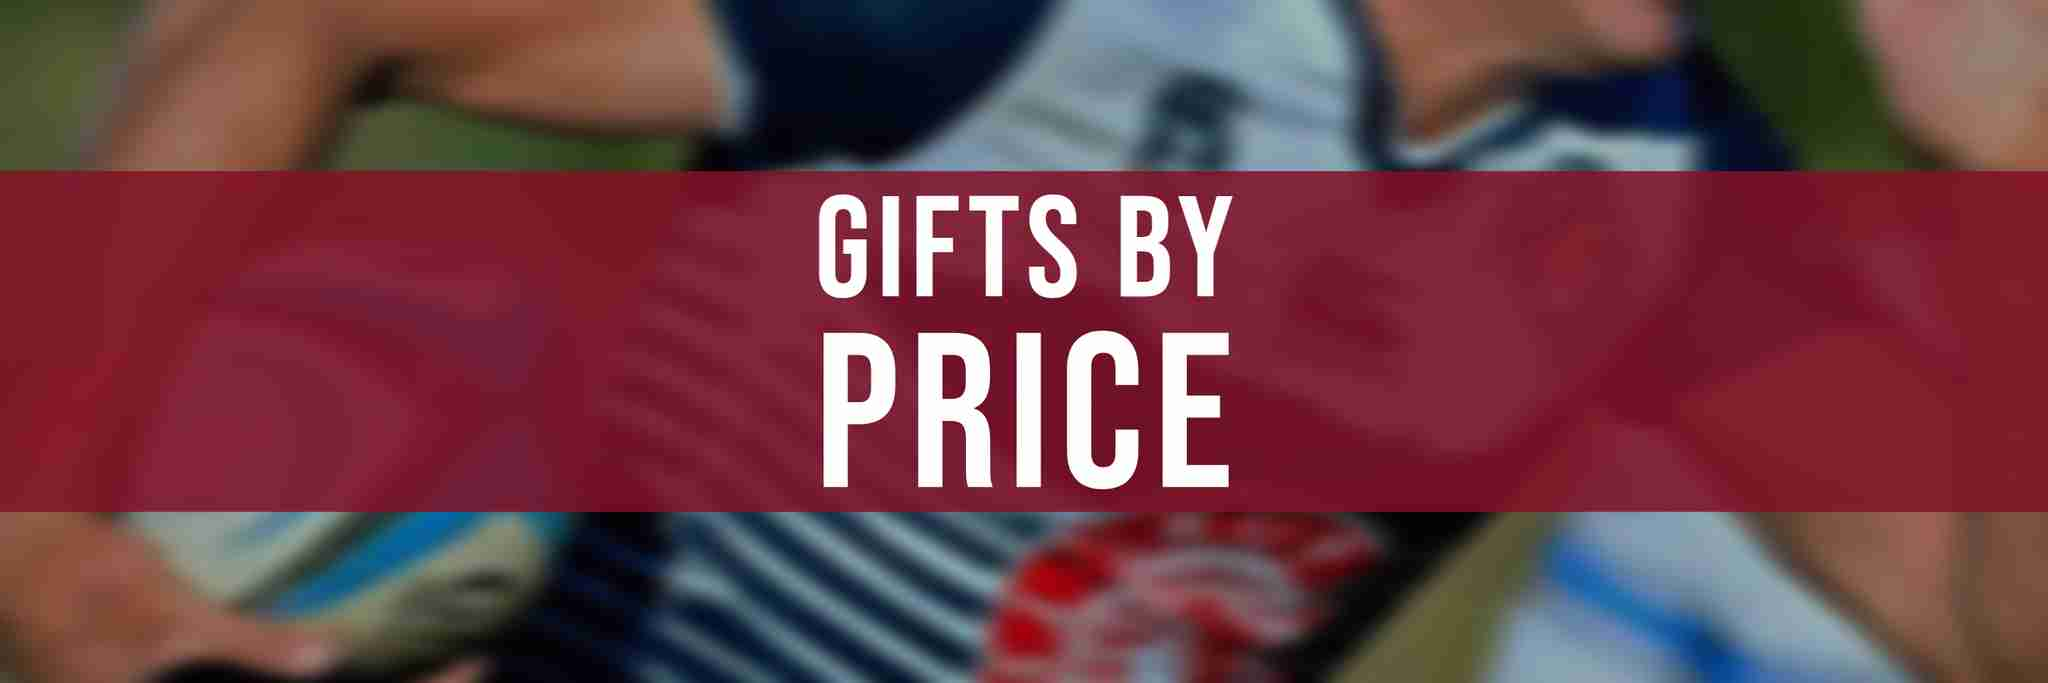 Ruggers Rugby Gifts by Price